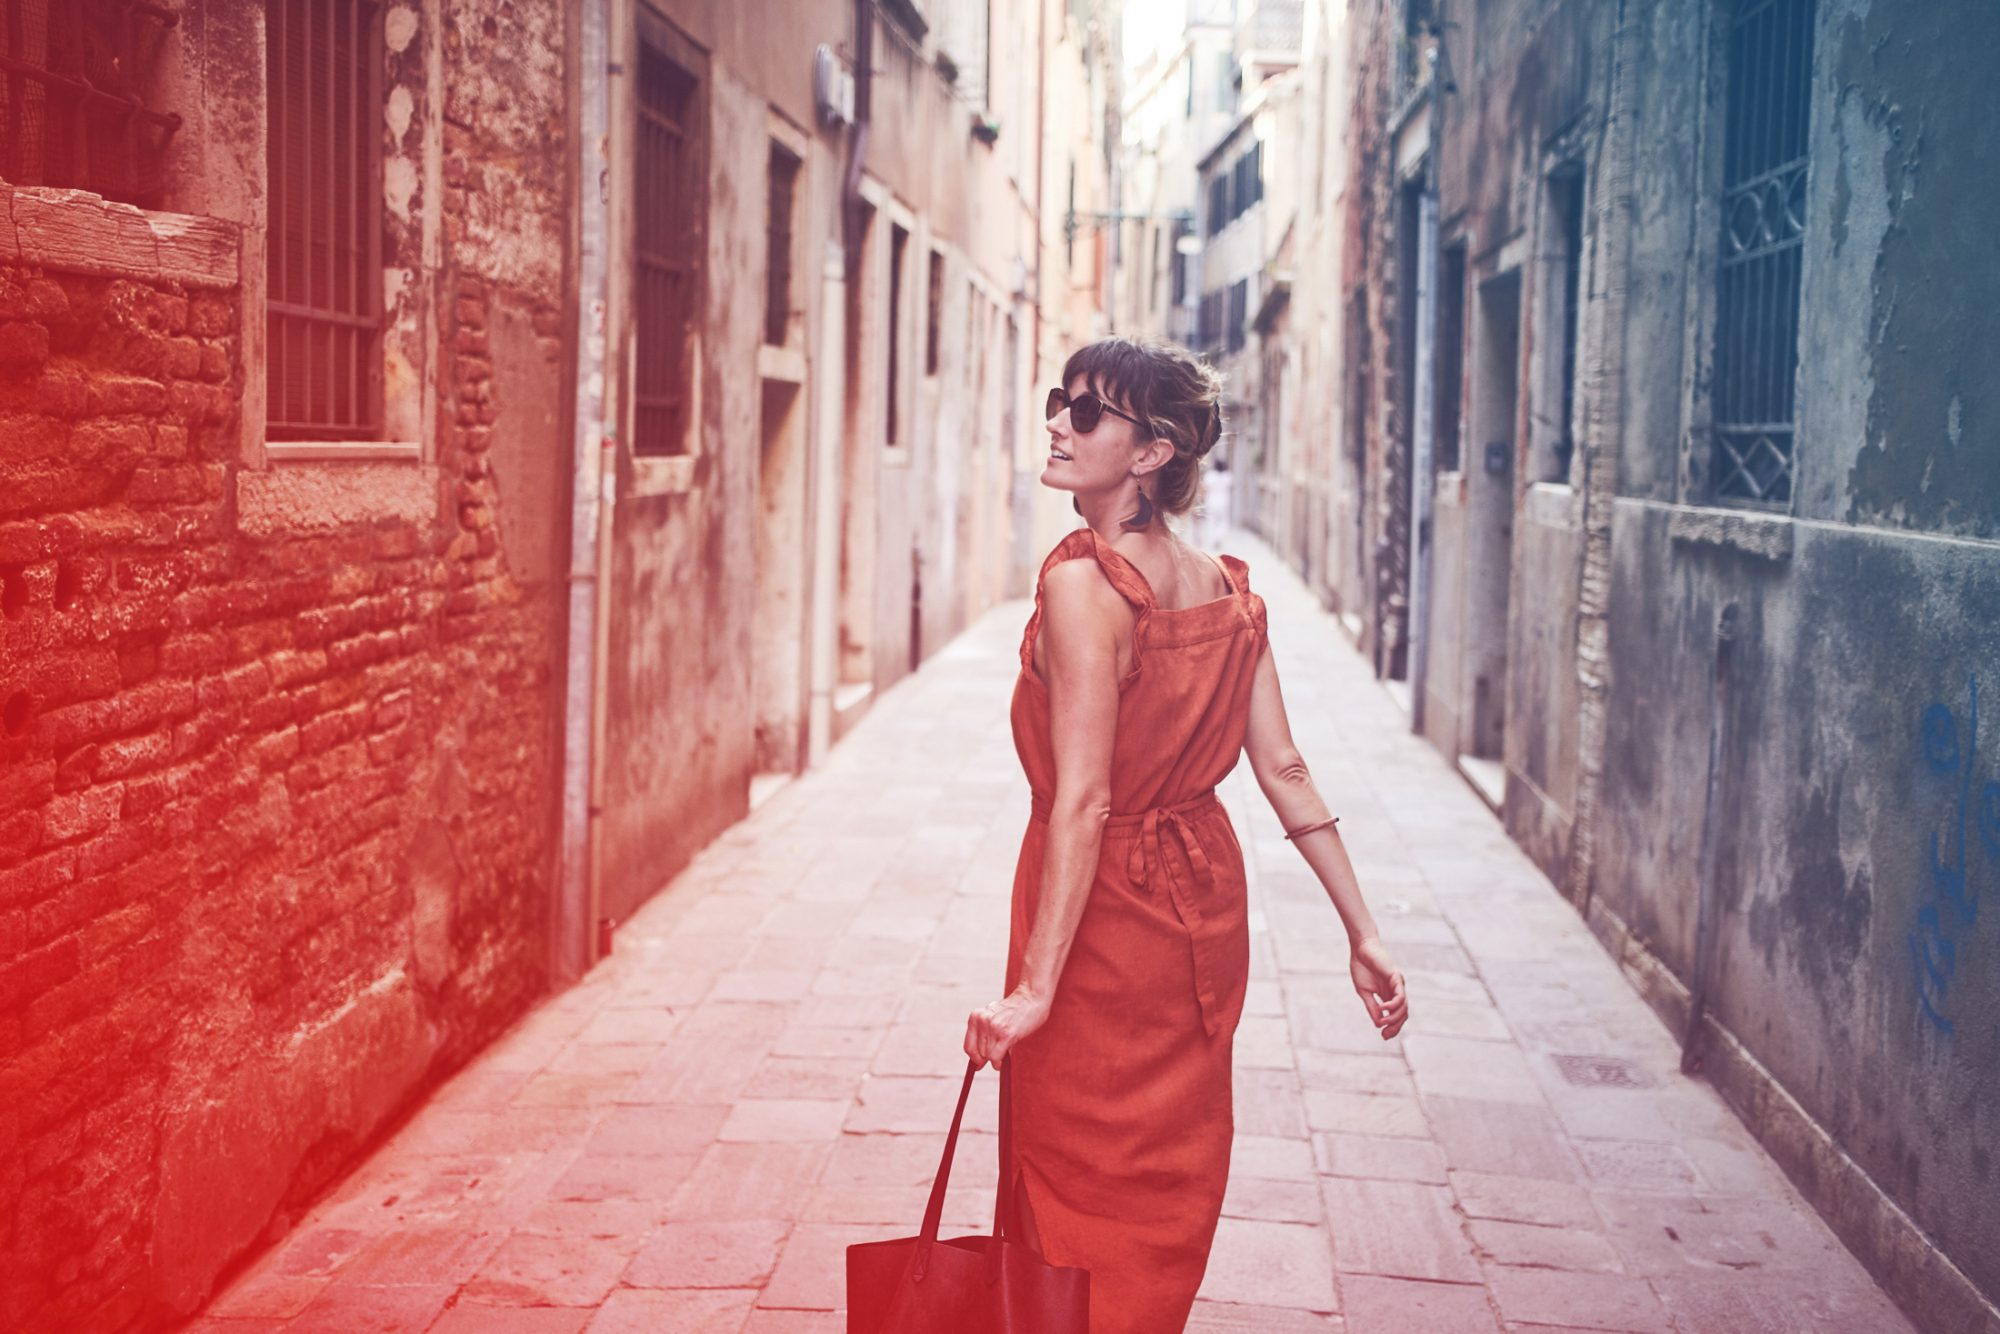 A young woman walks down an old street in Italy